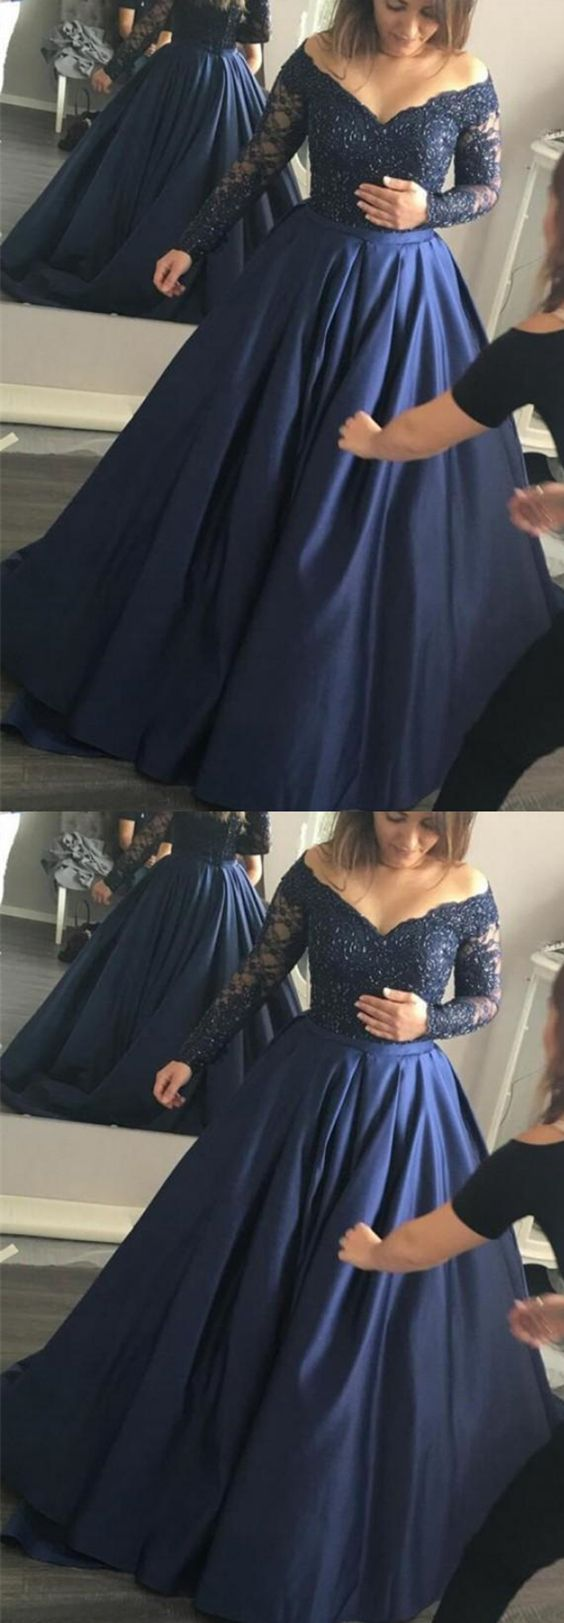 Ball gown offtheshoulder long sleeves beaded navy blue prom dress